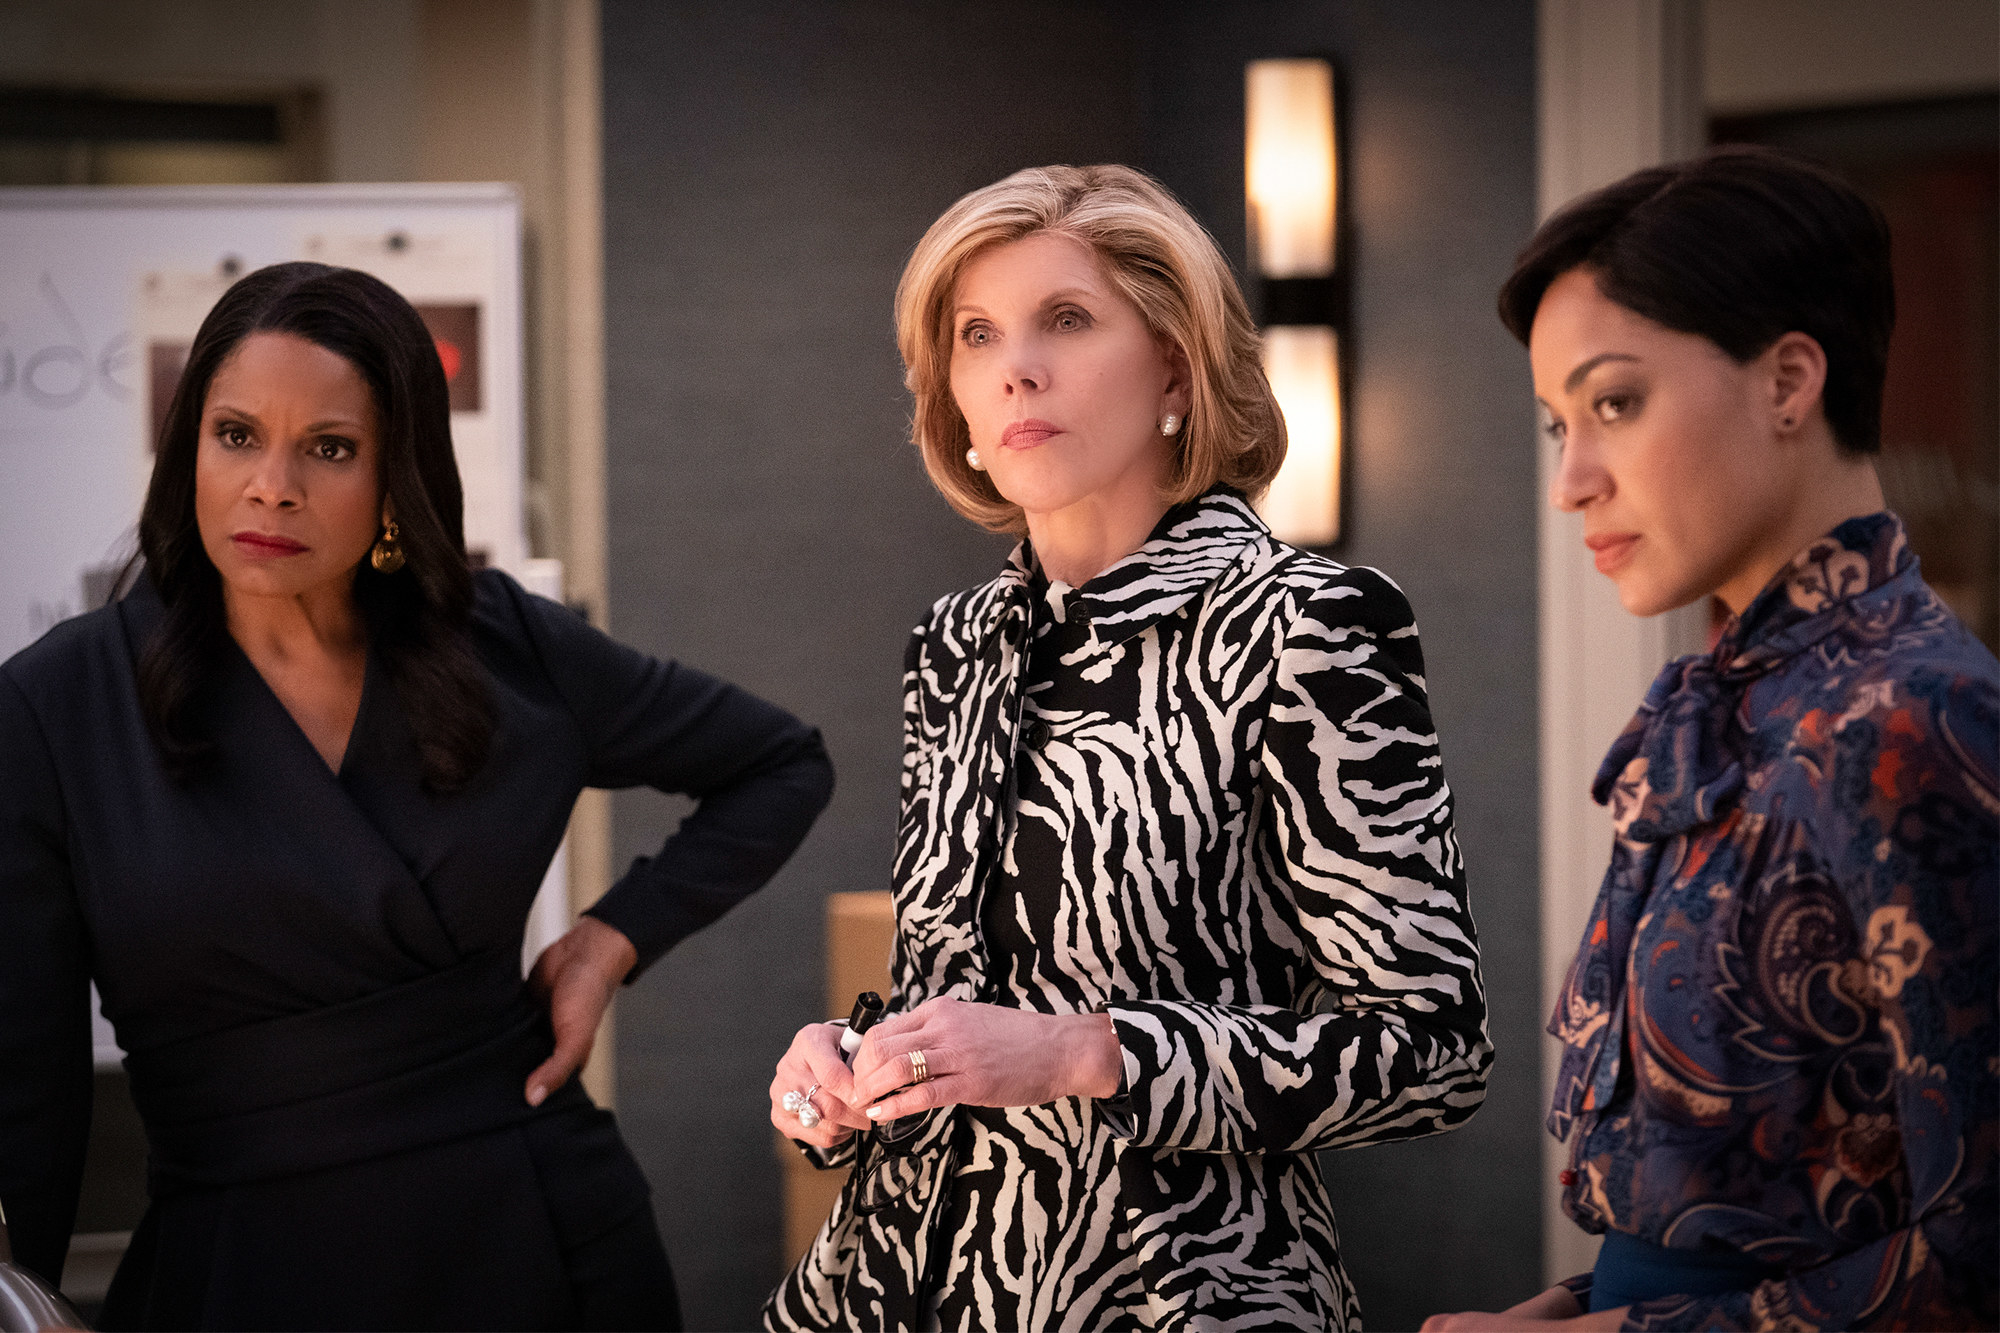 Audra McDonald, Christine Baranski, and Cush Jumbo in The Good Fight